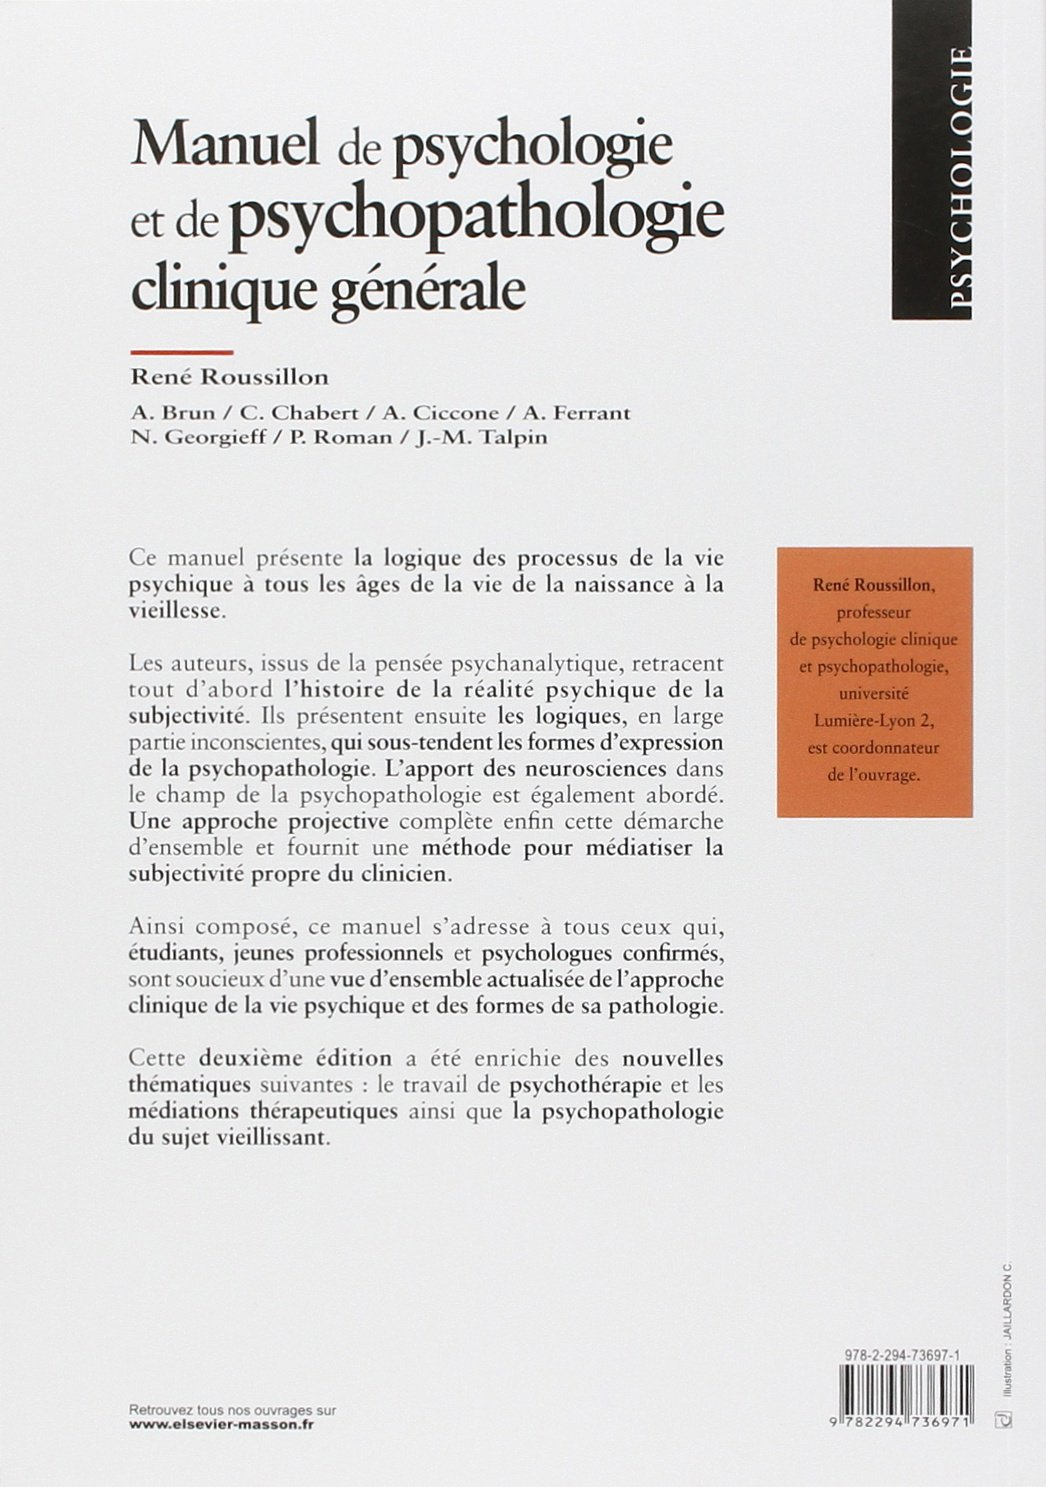 MANUEL DE PSYCHOLOGIE CLINIQUE GÉNÉRALE 2E ÉD.: Amazon.ca: René Roussillon:  Books